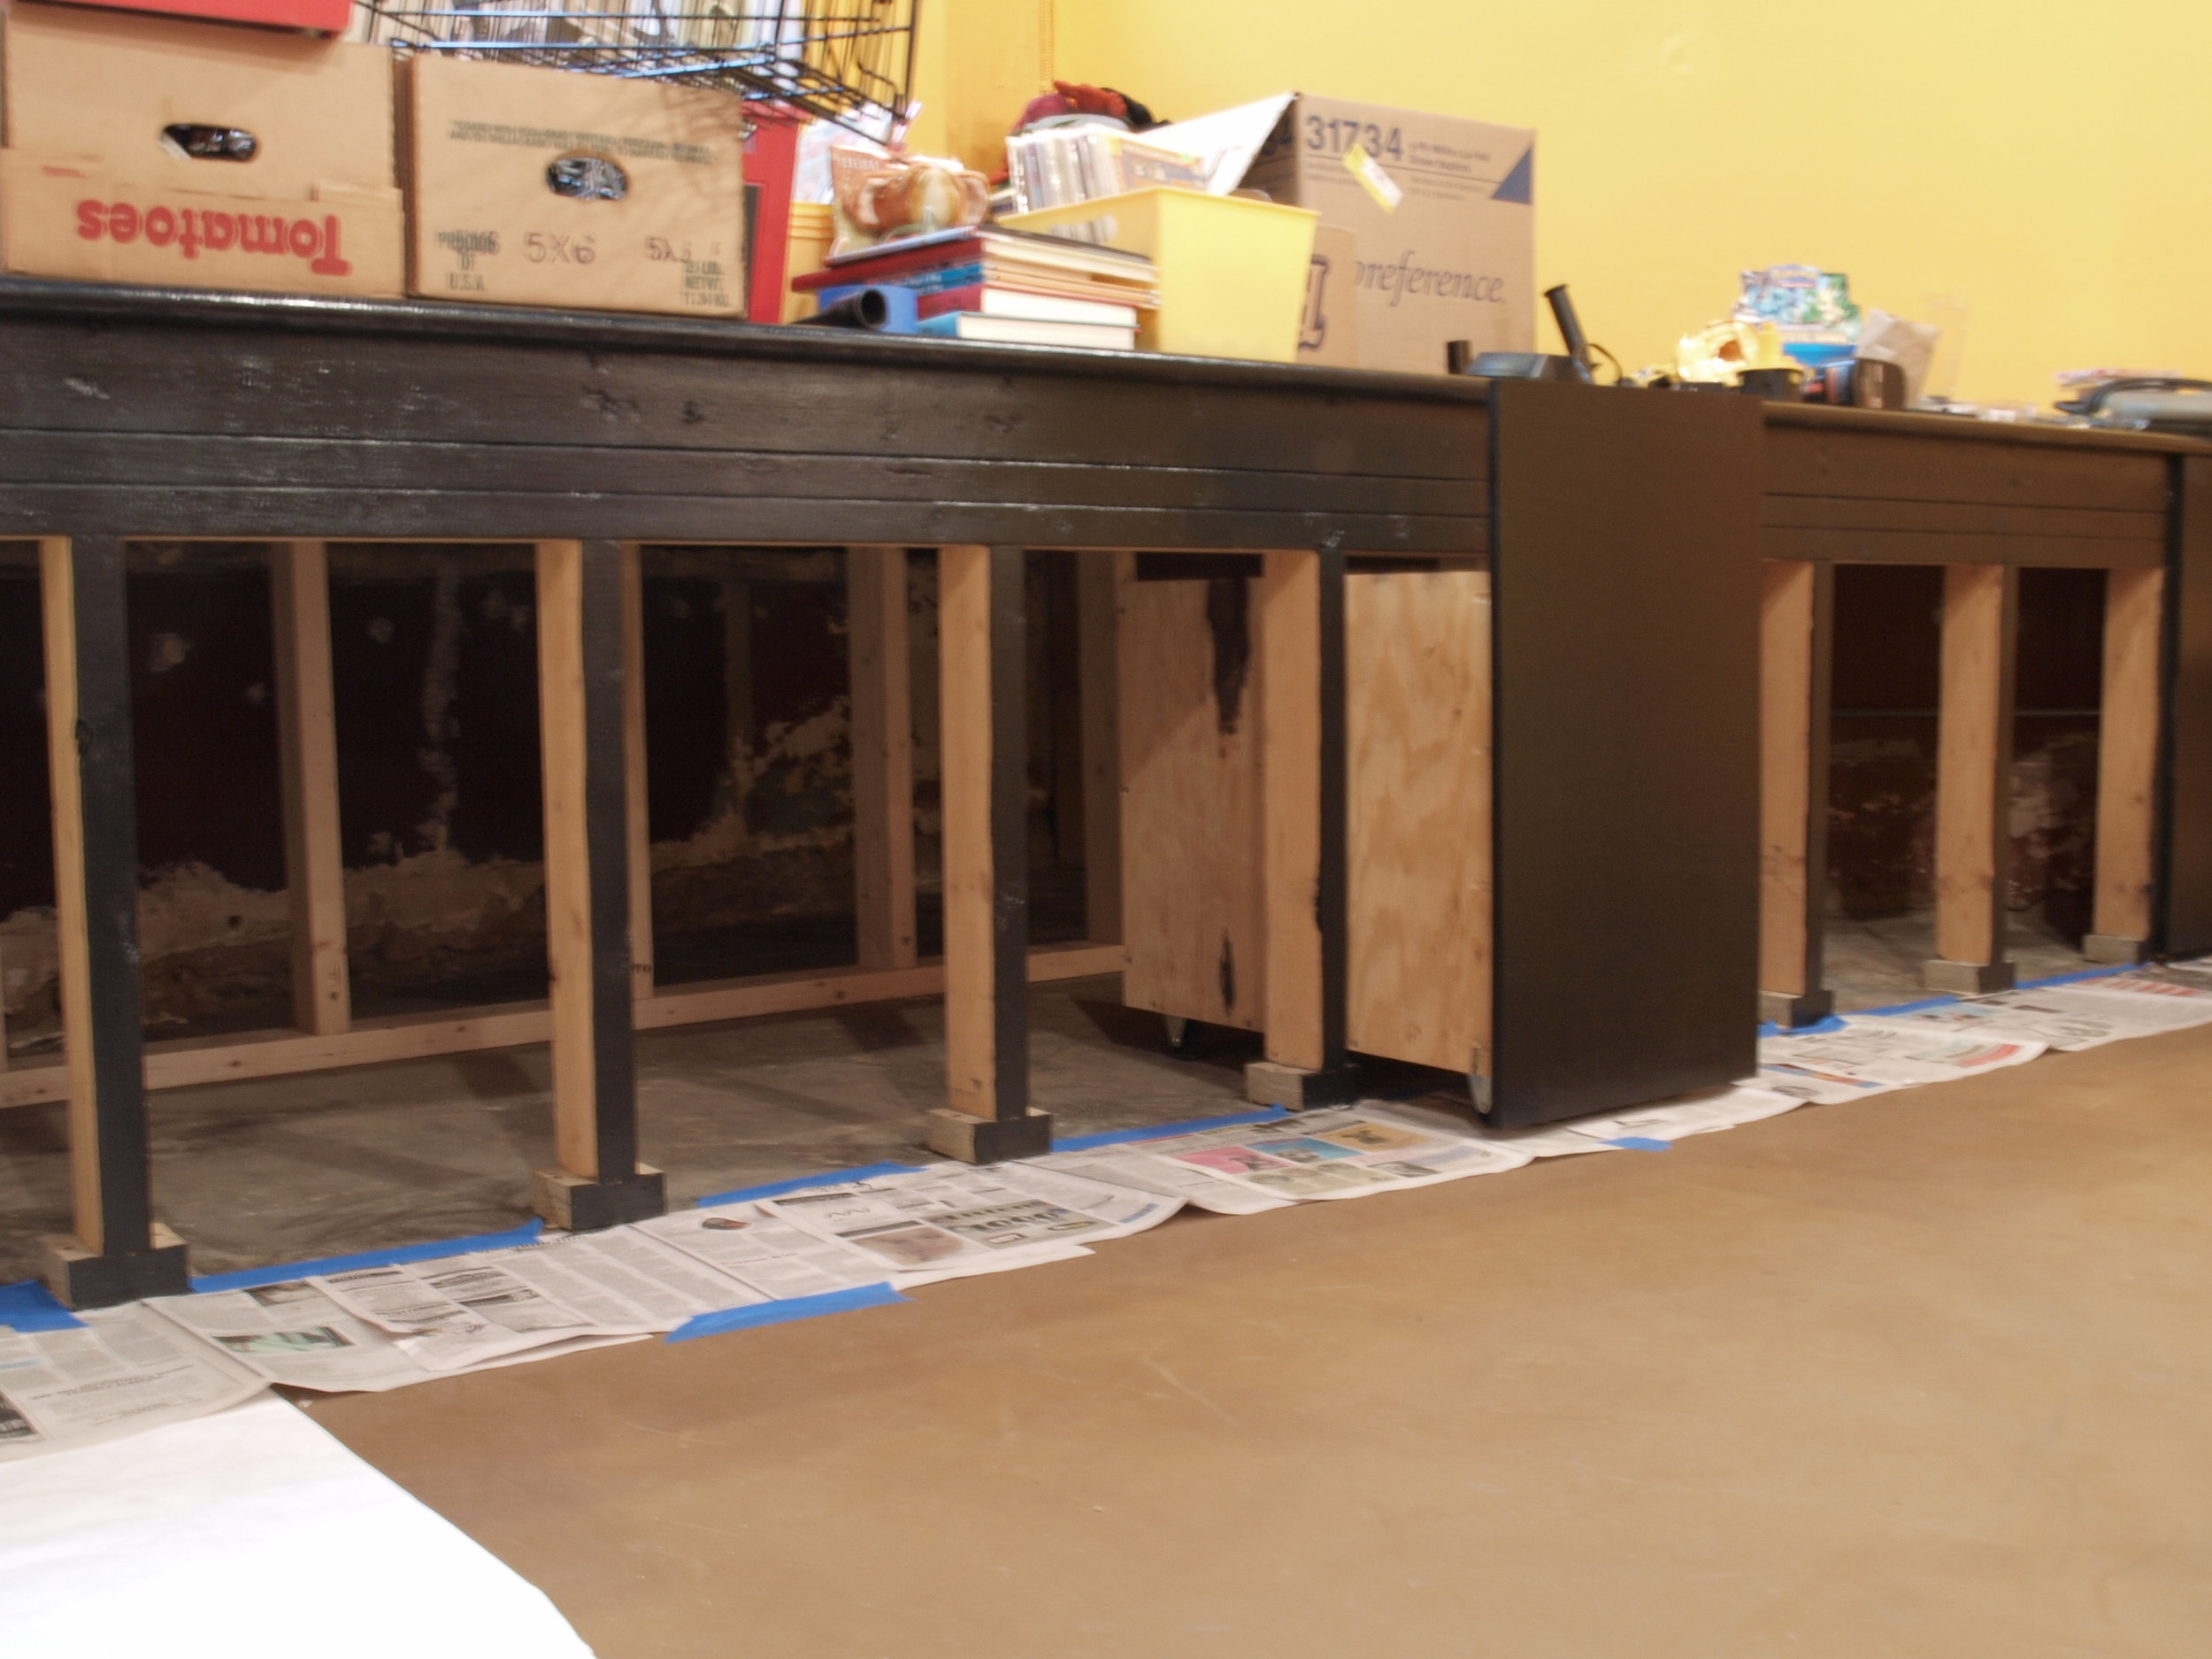 The space came with a stage which did double duty for us after we reinforced the structure and built rolling carts to hold overstock merchandise and supplies underneath.